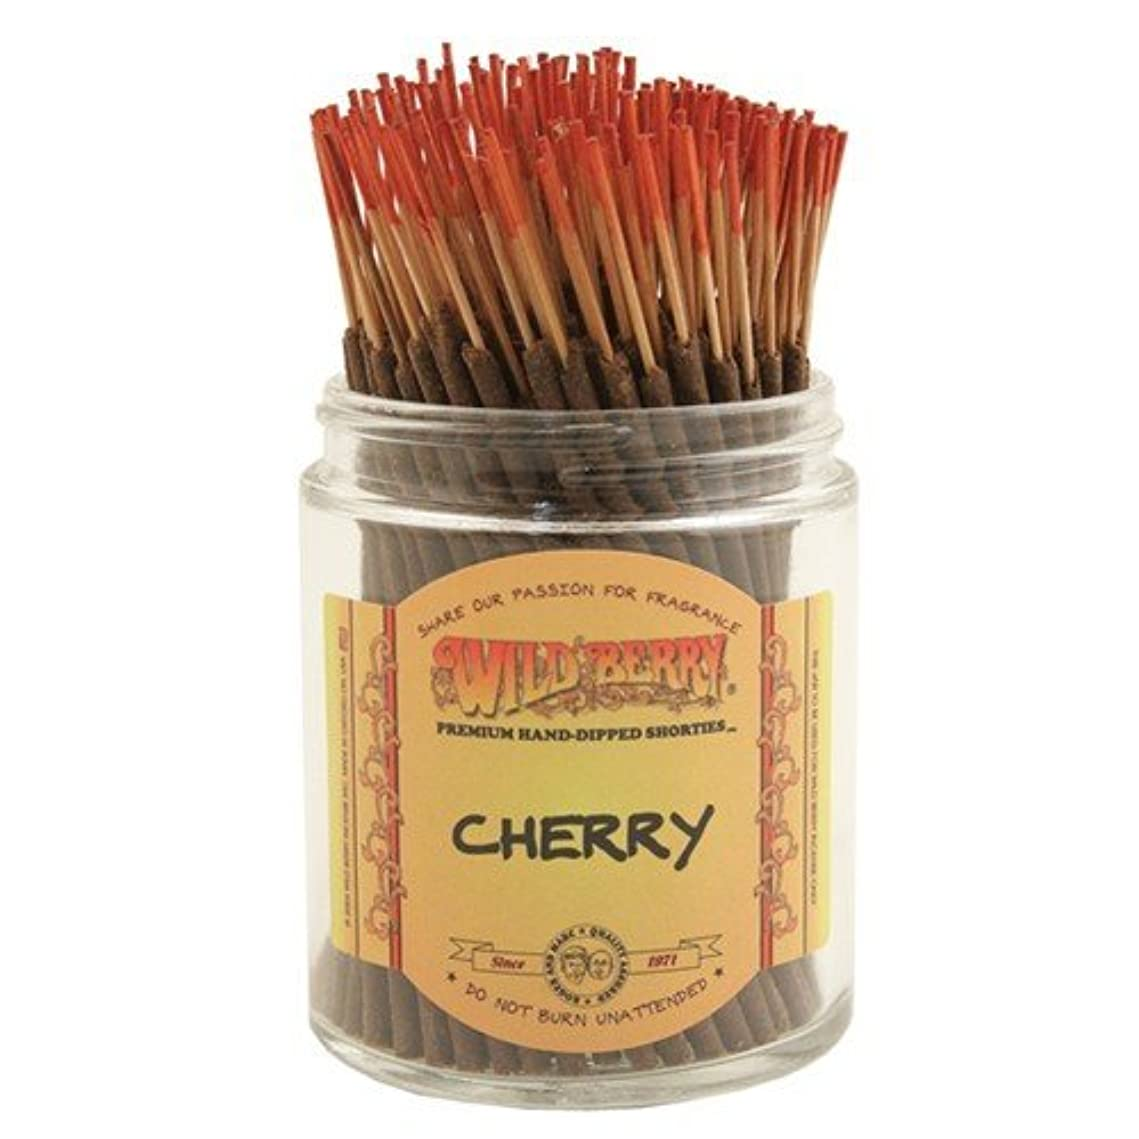 目立つ誠実モーターWildberry Cherry Shorties Incense Sticks 100pack [並行輸入品]